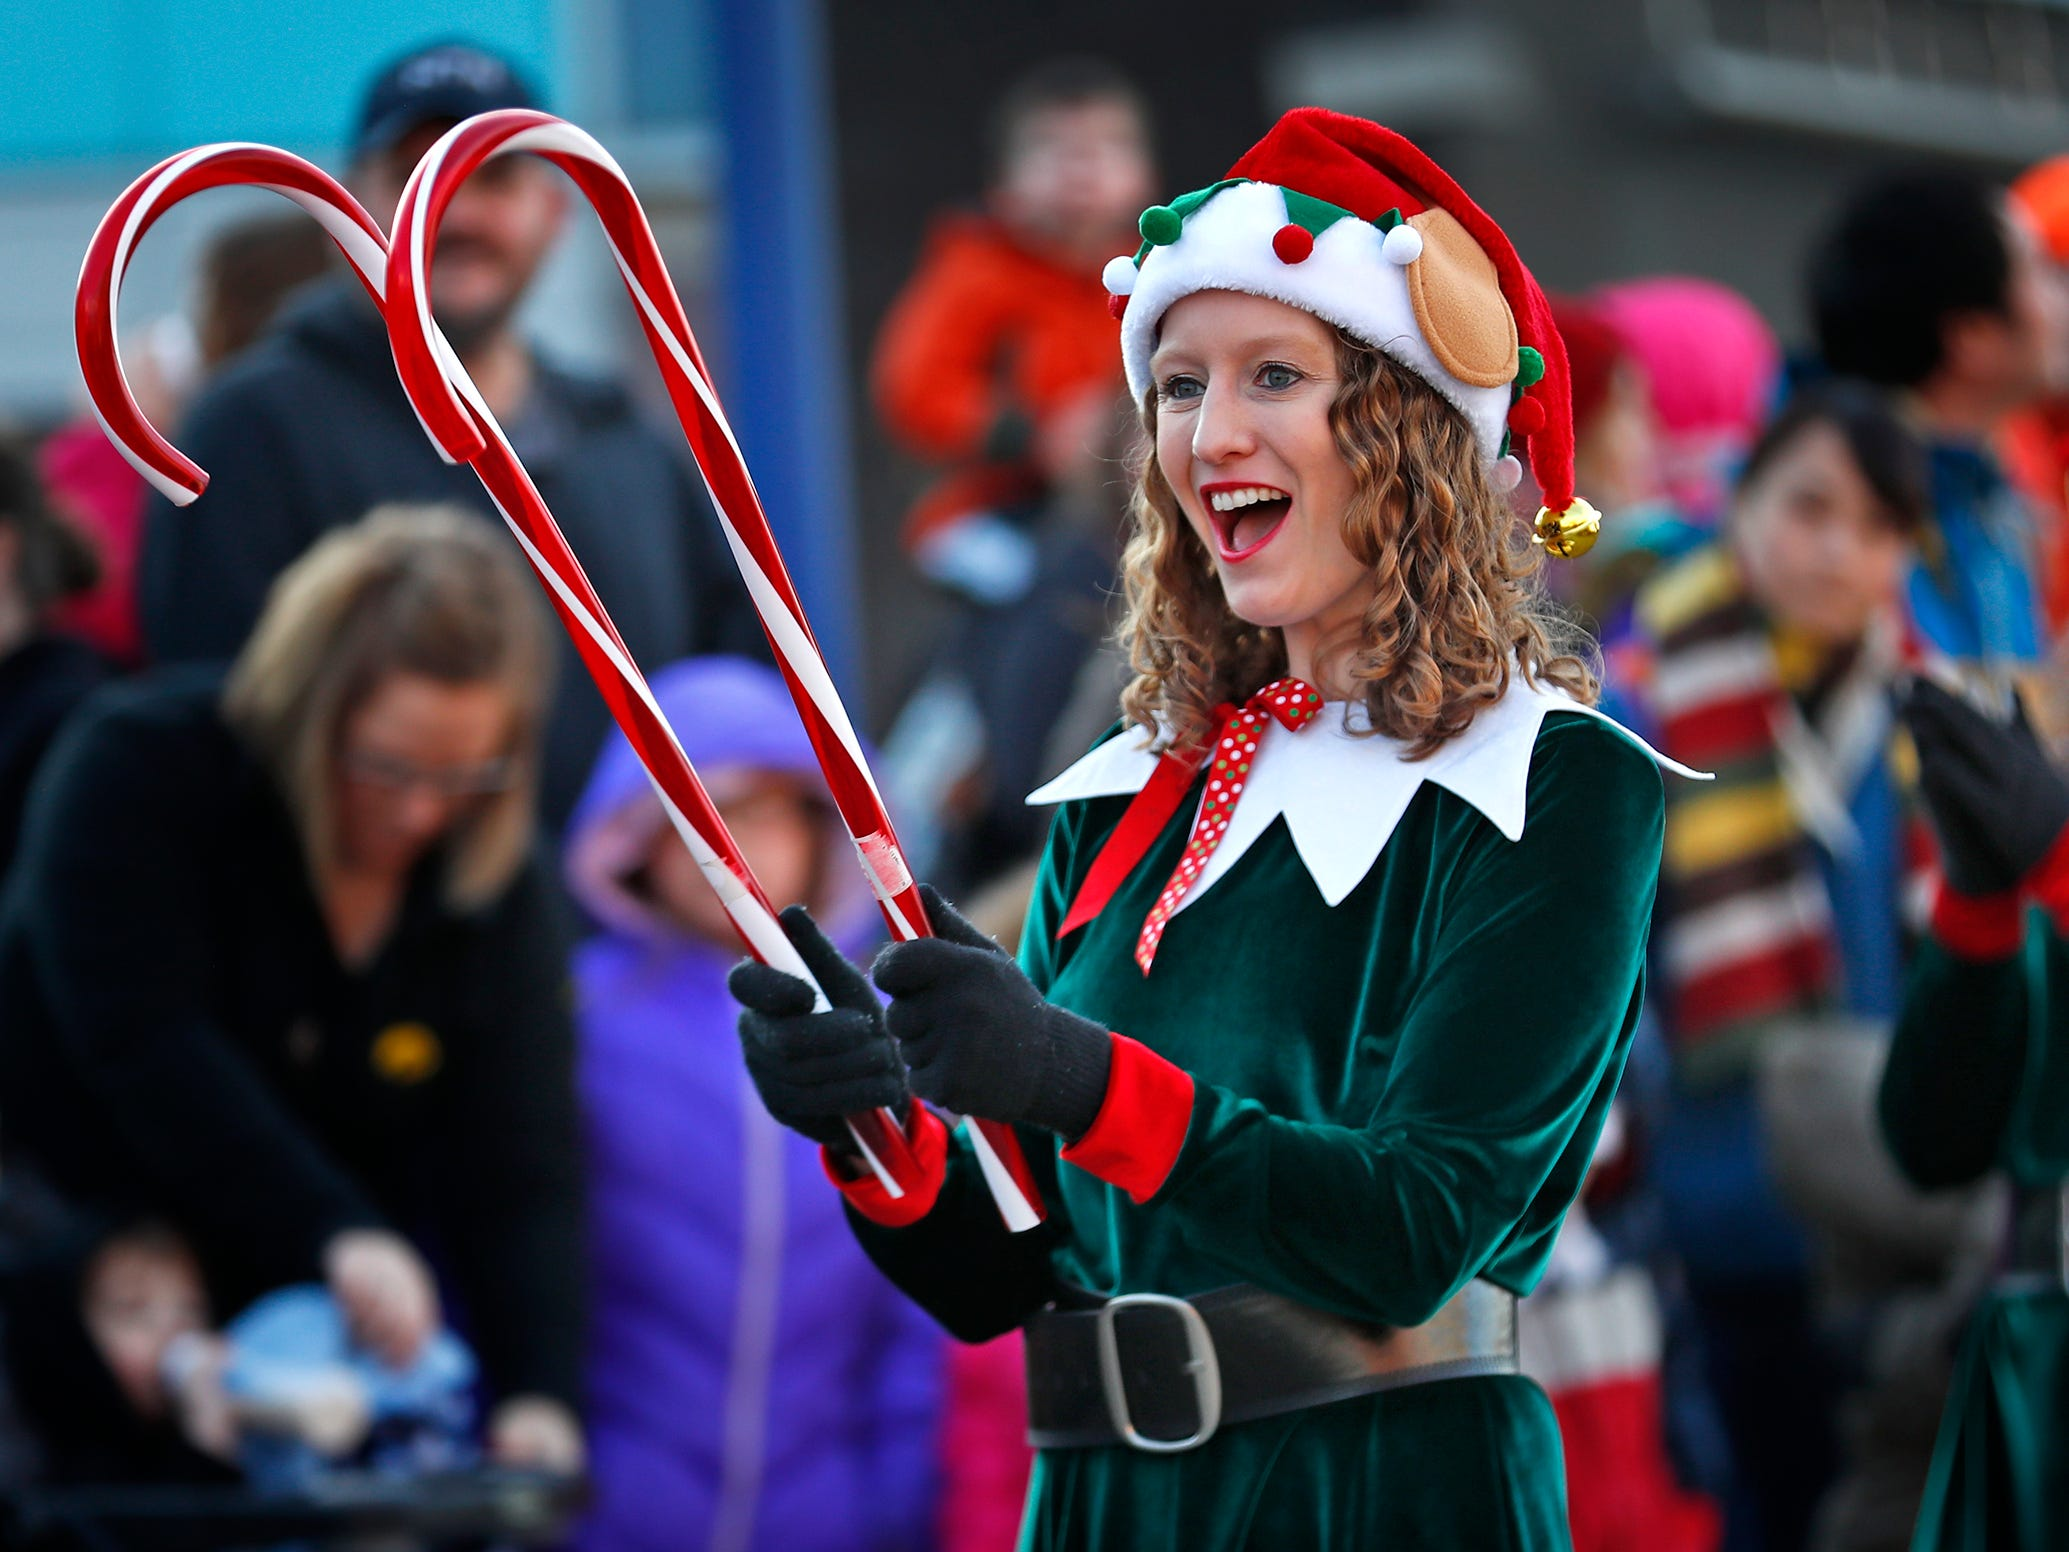 Elves, including Jenny Holland. entertain as the crowd awaits Santa's arrival at the Children's Museum of Indianapolis in an IndyCar driven by racer Ed Carpenter, Friday, Nov. 23, 2018.